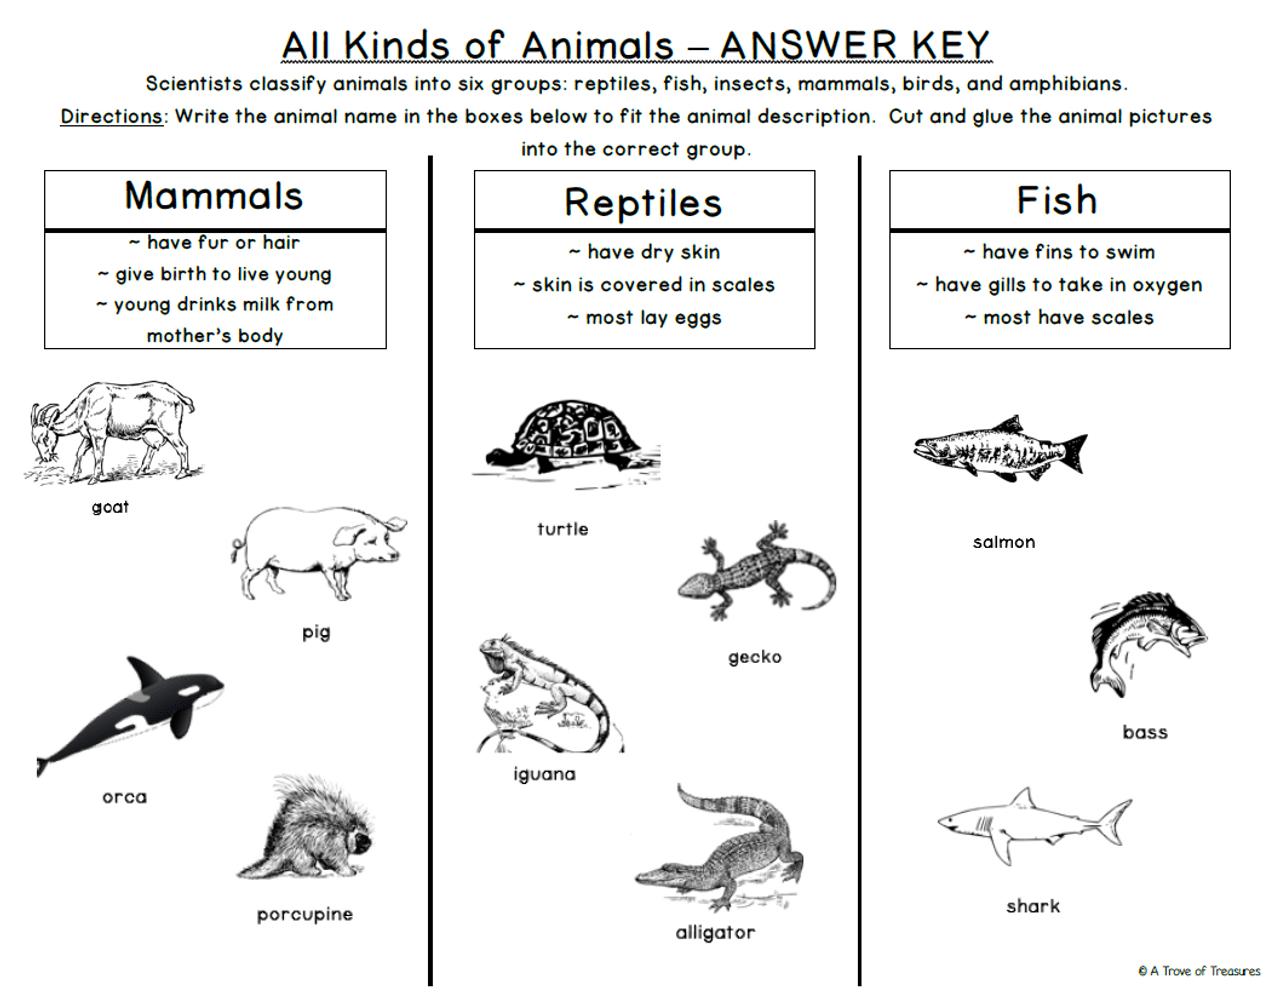 Animal Groups Classification Mega Pack - Amped Up Learning [ 992 x 1280 Pixel ]